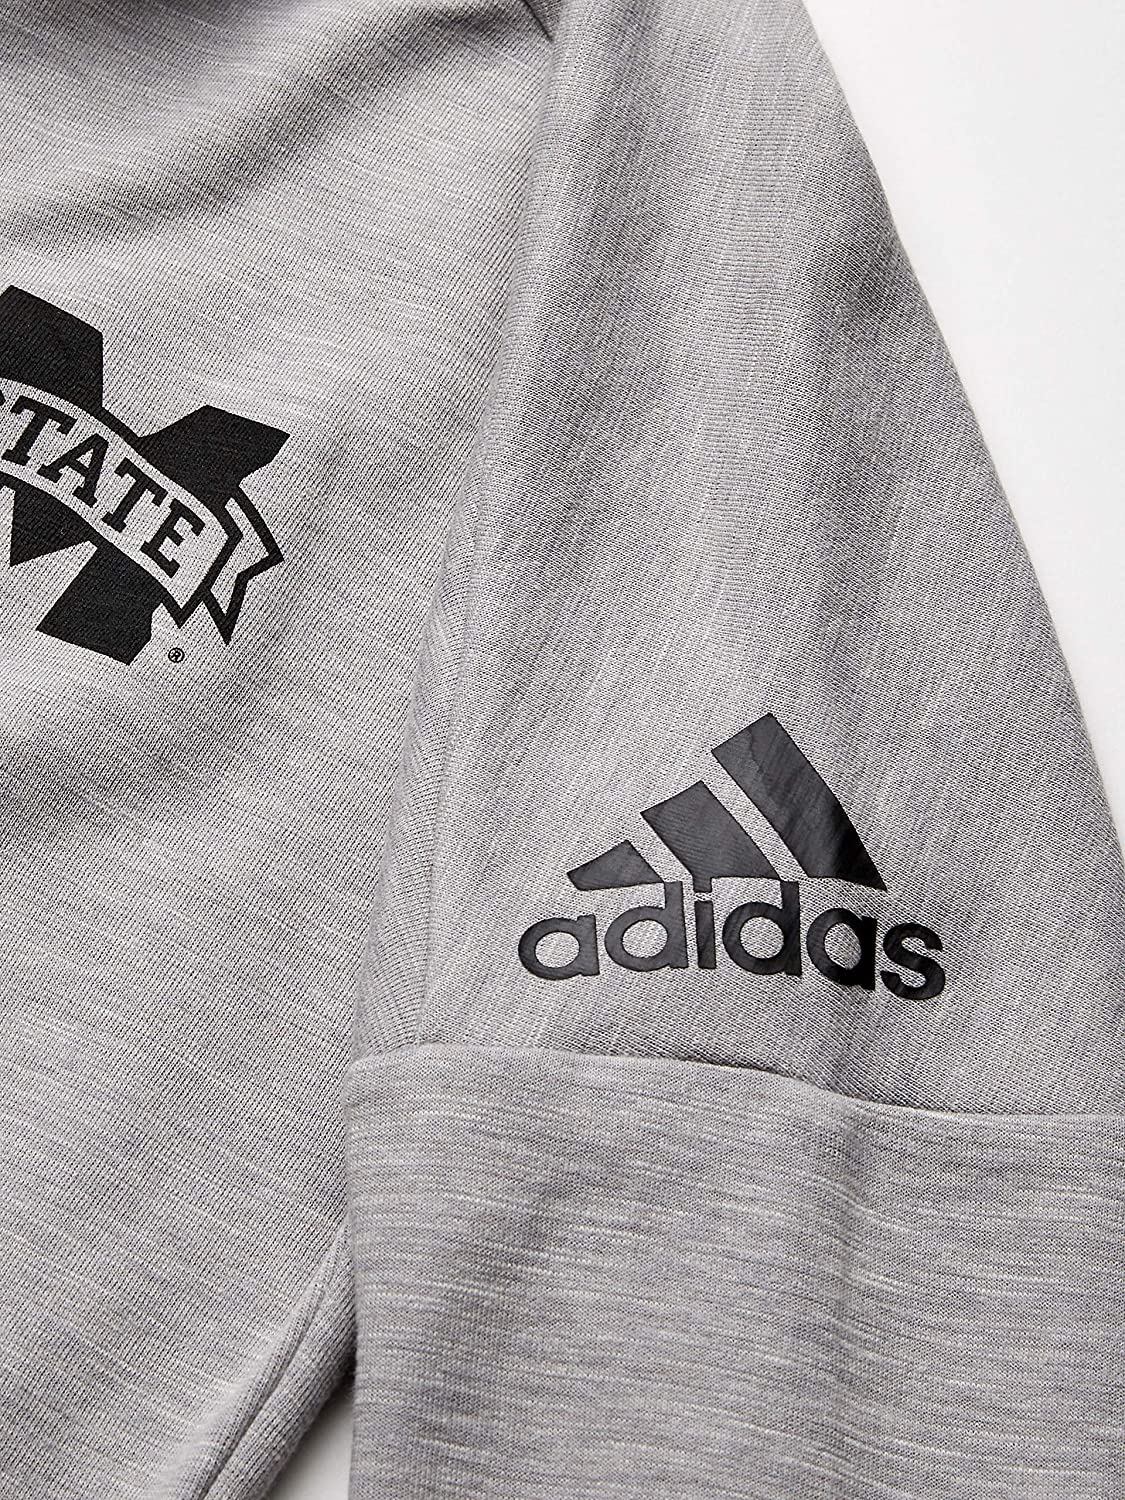 adidas NCAA Mens Fleece